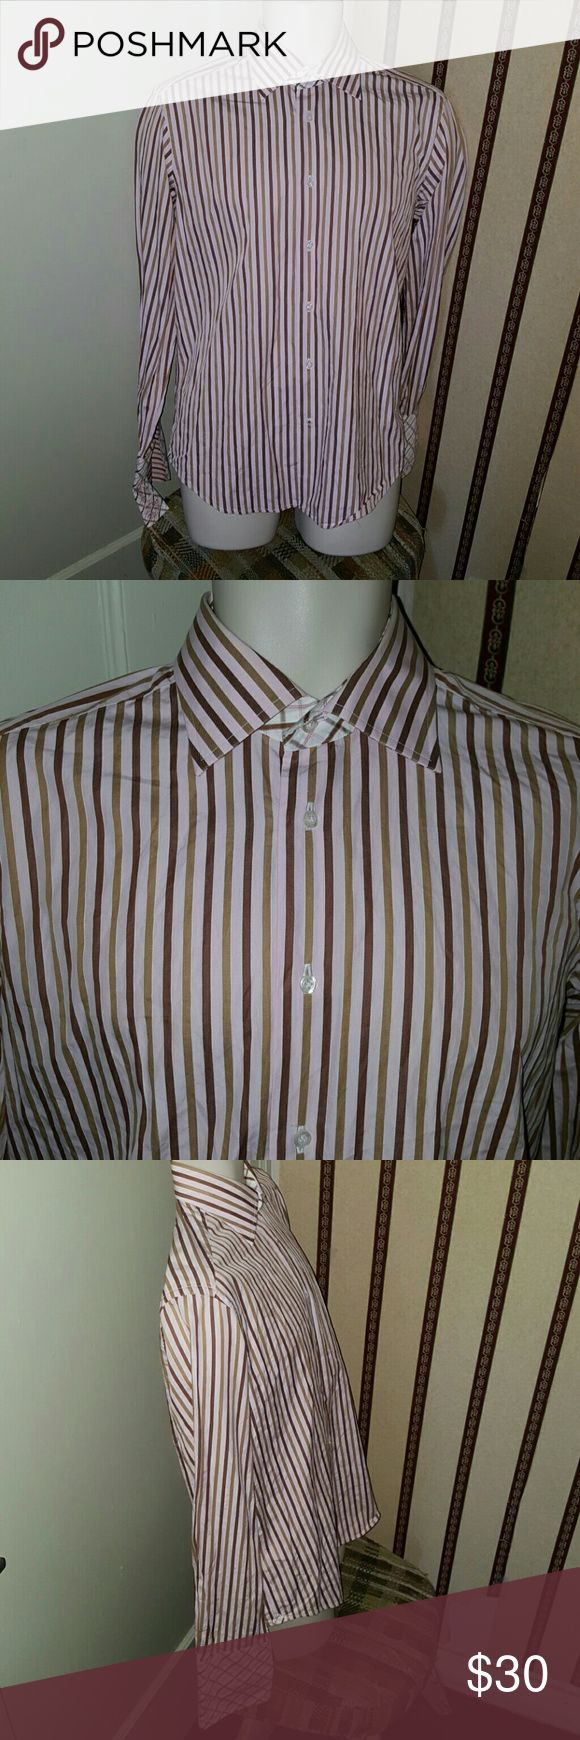 "Robert Graham Striped French Cuff Shirt Sz 15 1/2 Robert Graham embroidered French cuff shirt. Size is 15 1/2. There is a pin hole near the cuff, see last pic. Great colors on the shirt. Arm pit to arm pit is 22"". 100% cotton. Robert Graham Shirts Dress Shirts"